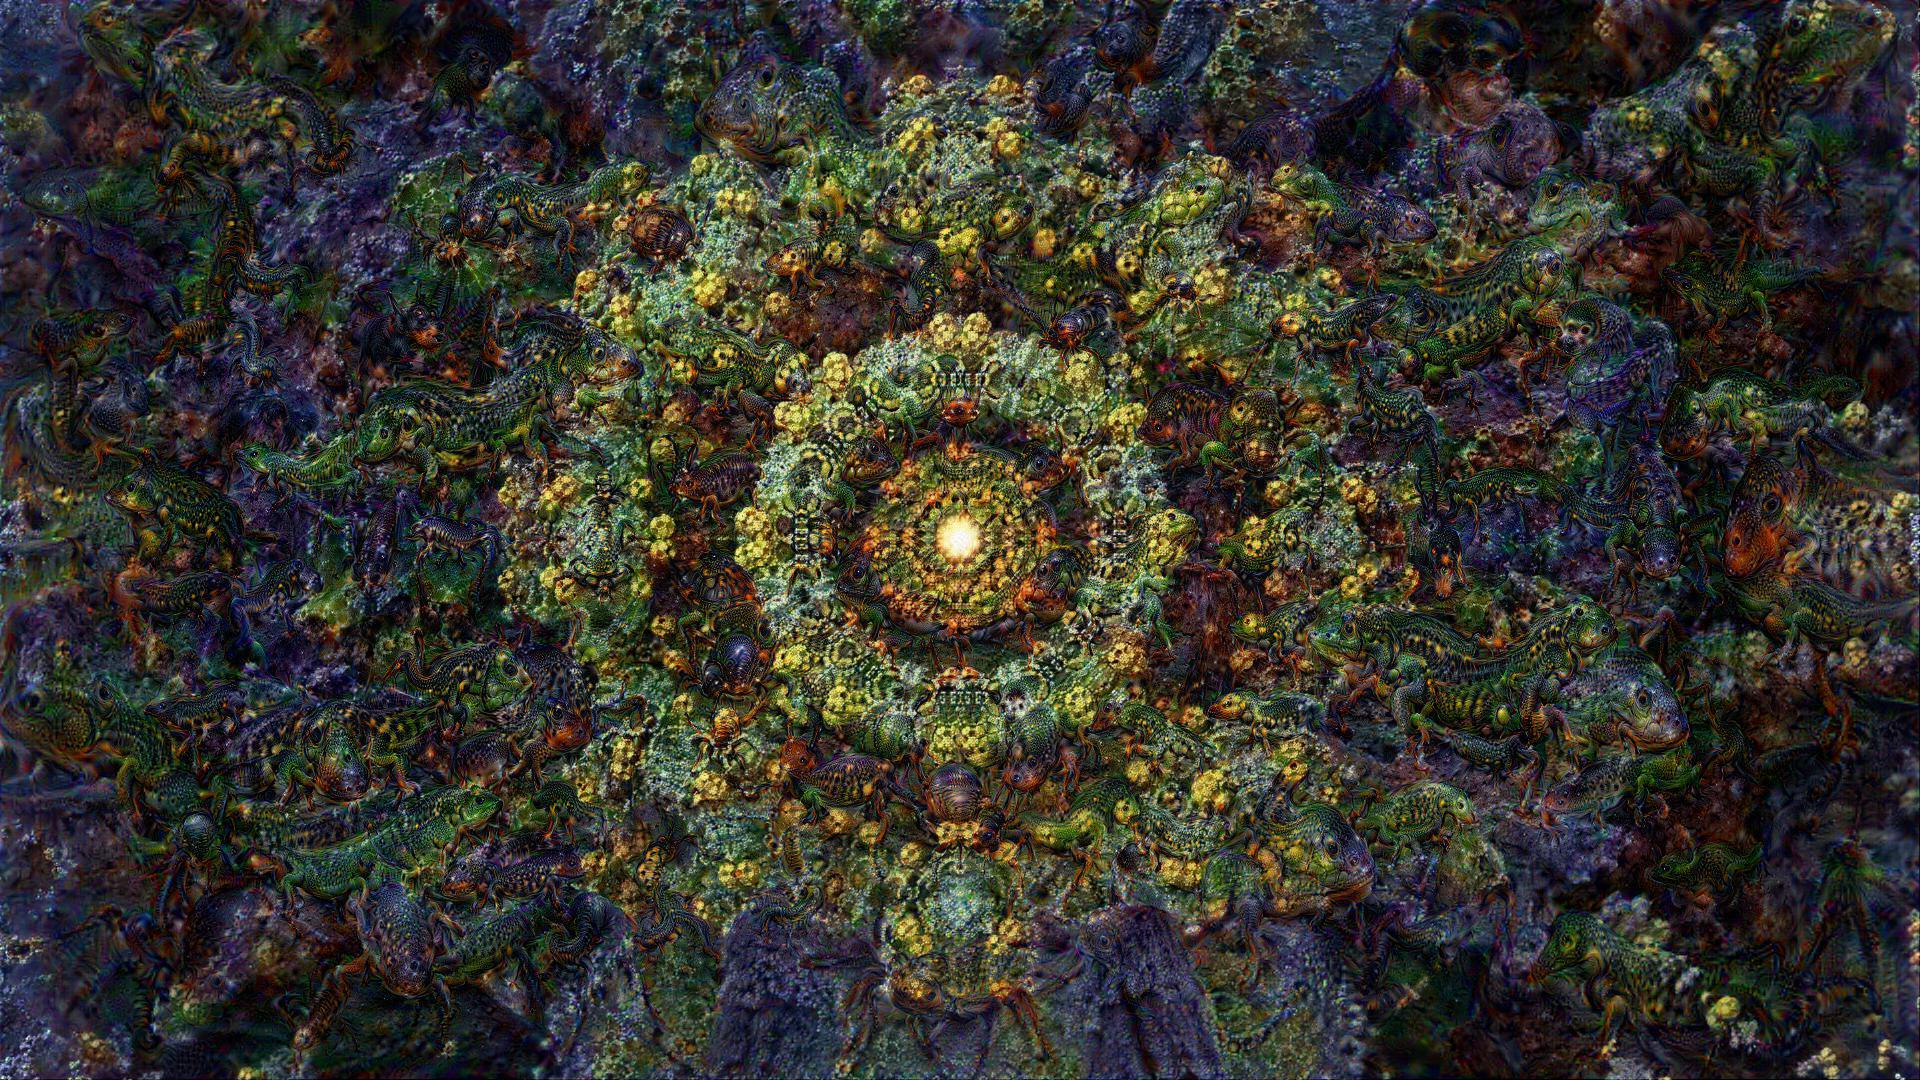 ACID EYE 360 VR - Psychedelic Deep Dream Fractal 3 by schizo604